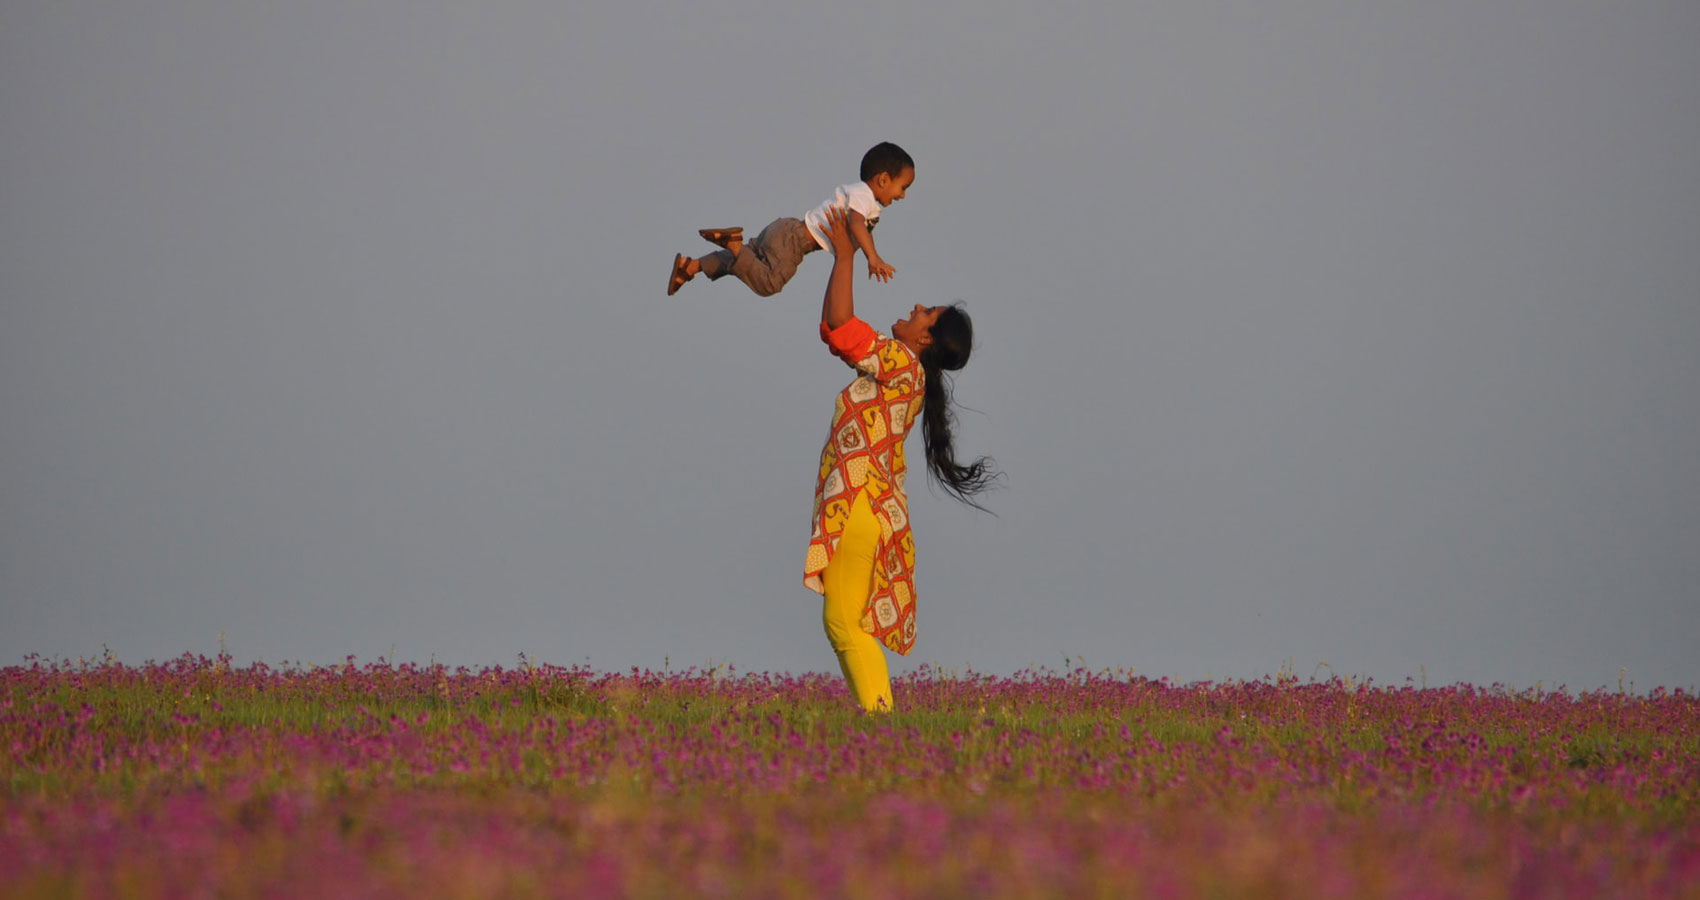 The Complete Mother, an essay by Rakshinda Mujeeb at Spillwords.com